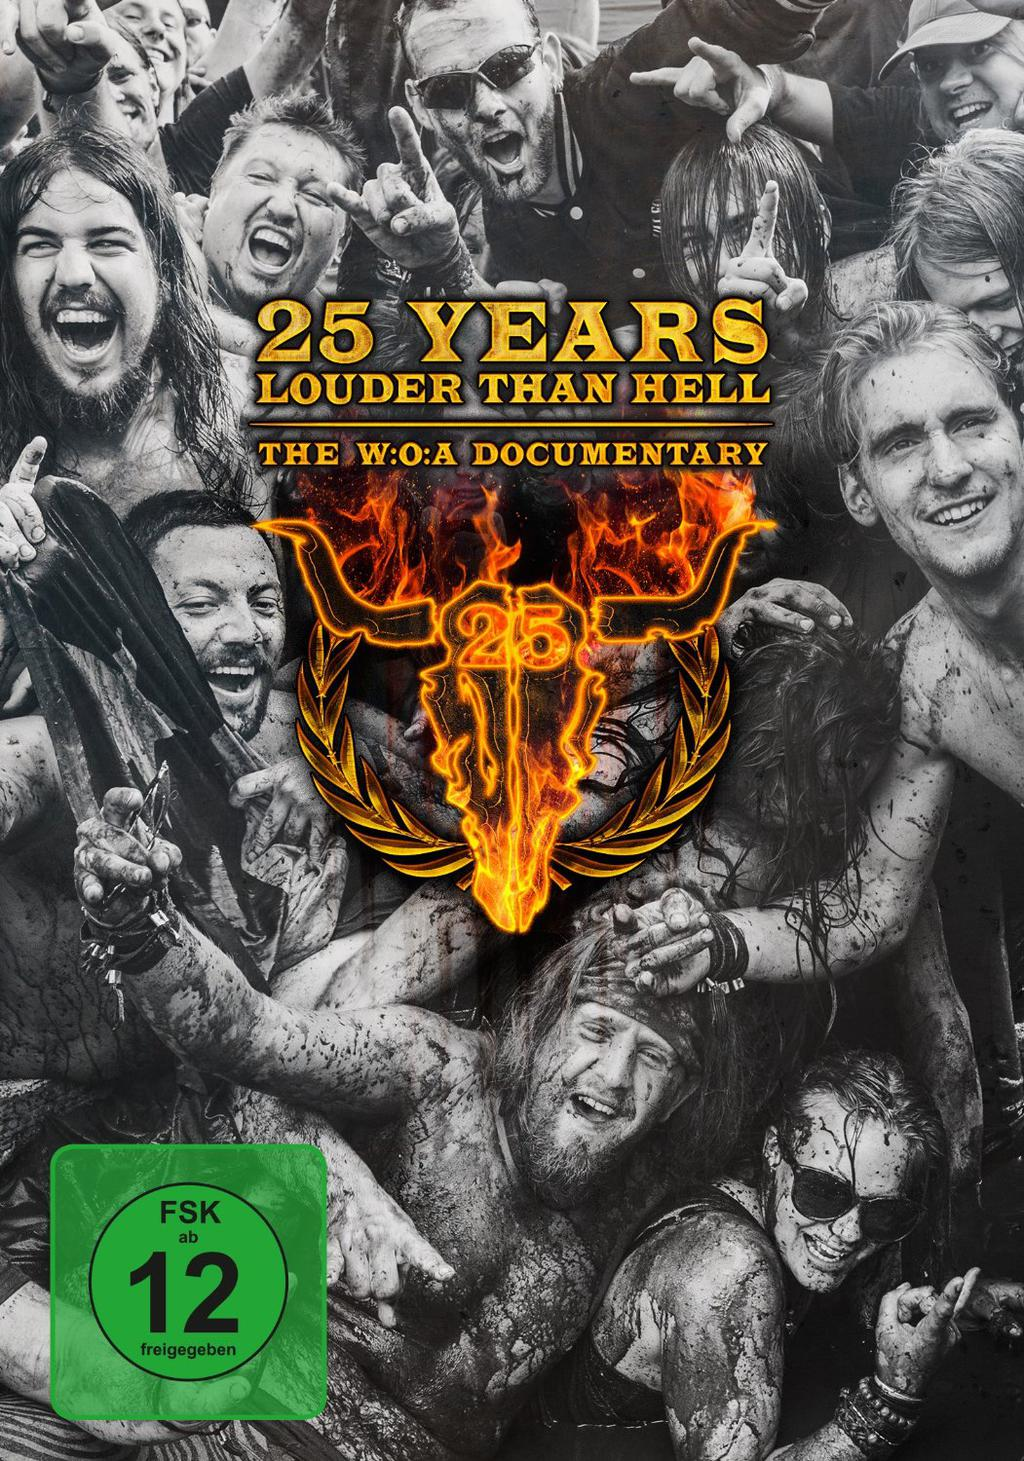 W:O:A - The W:O:A Documentary - 25 Years Louder Than Hell BluRay -